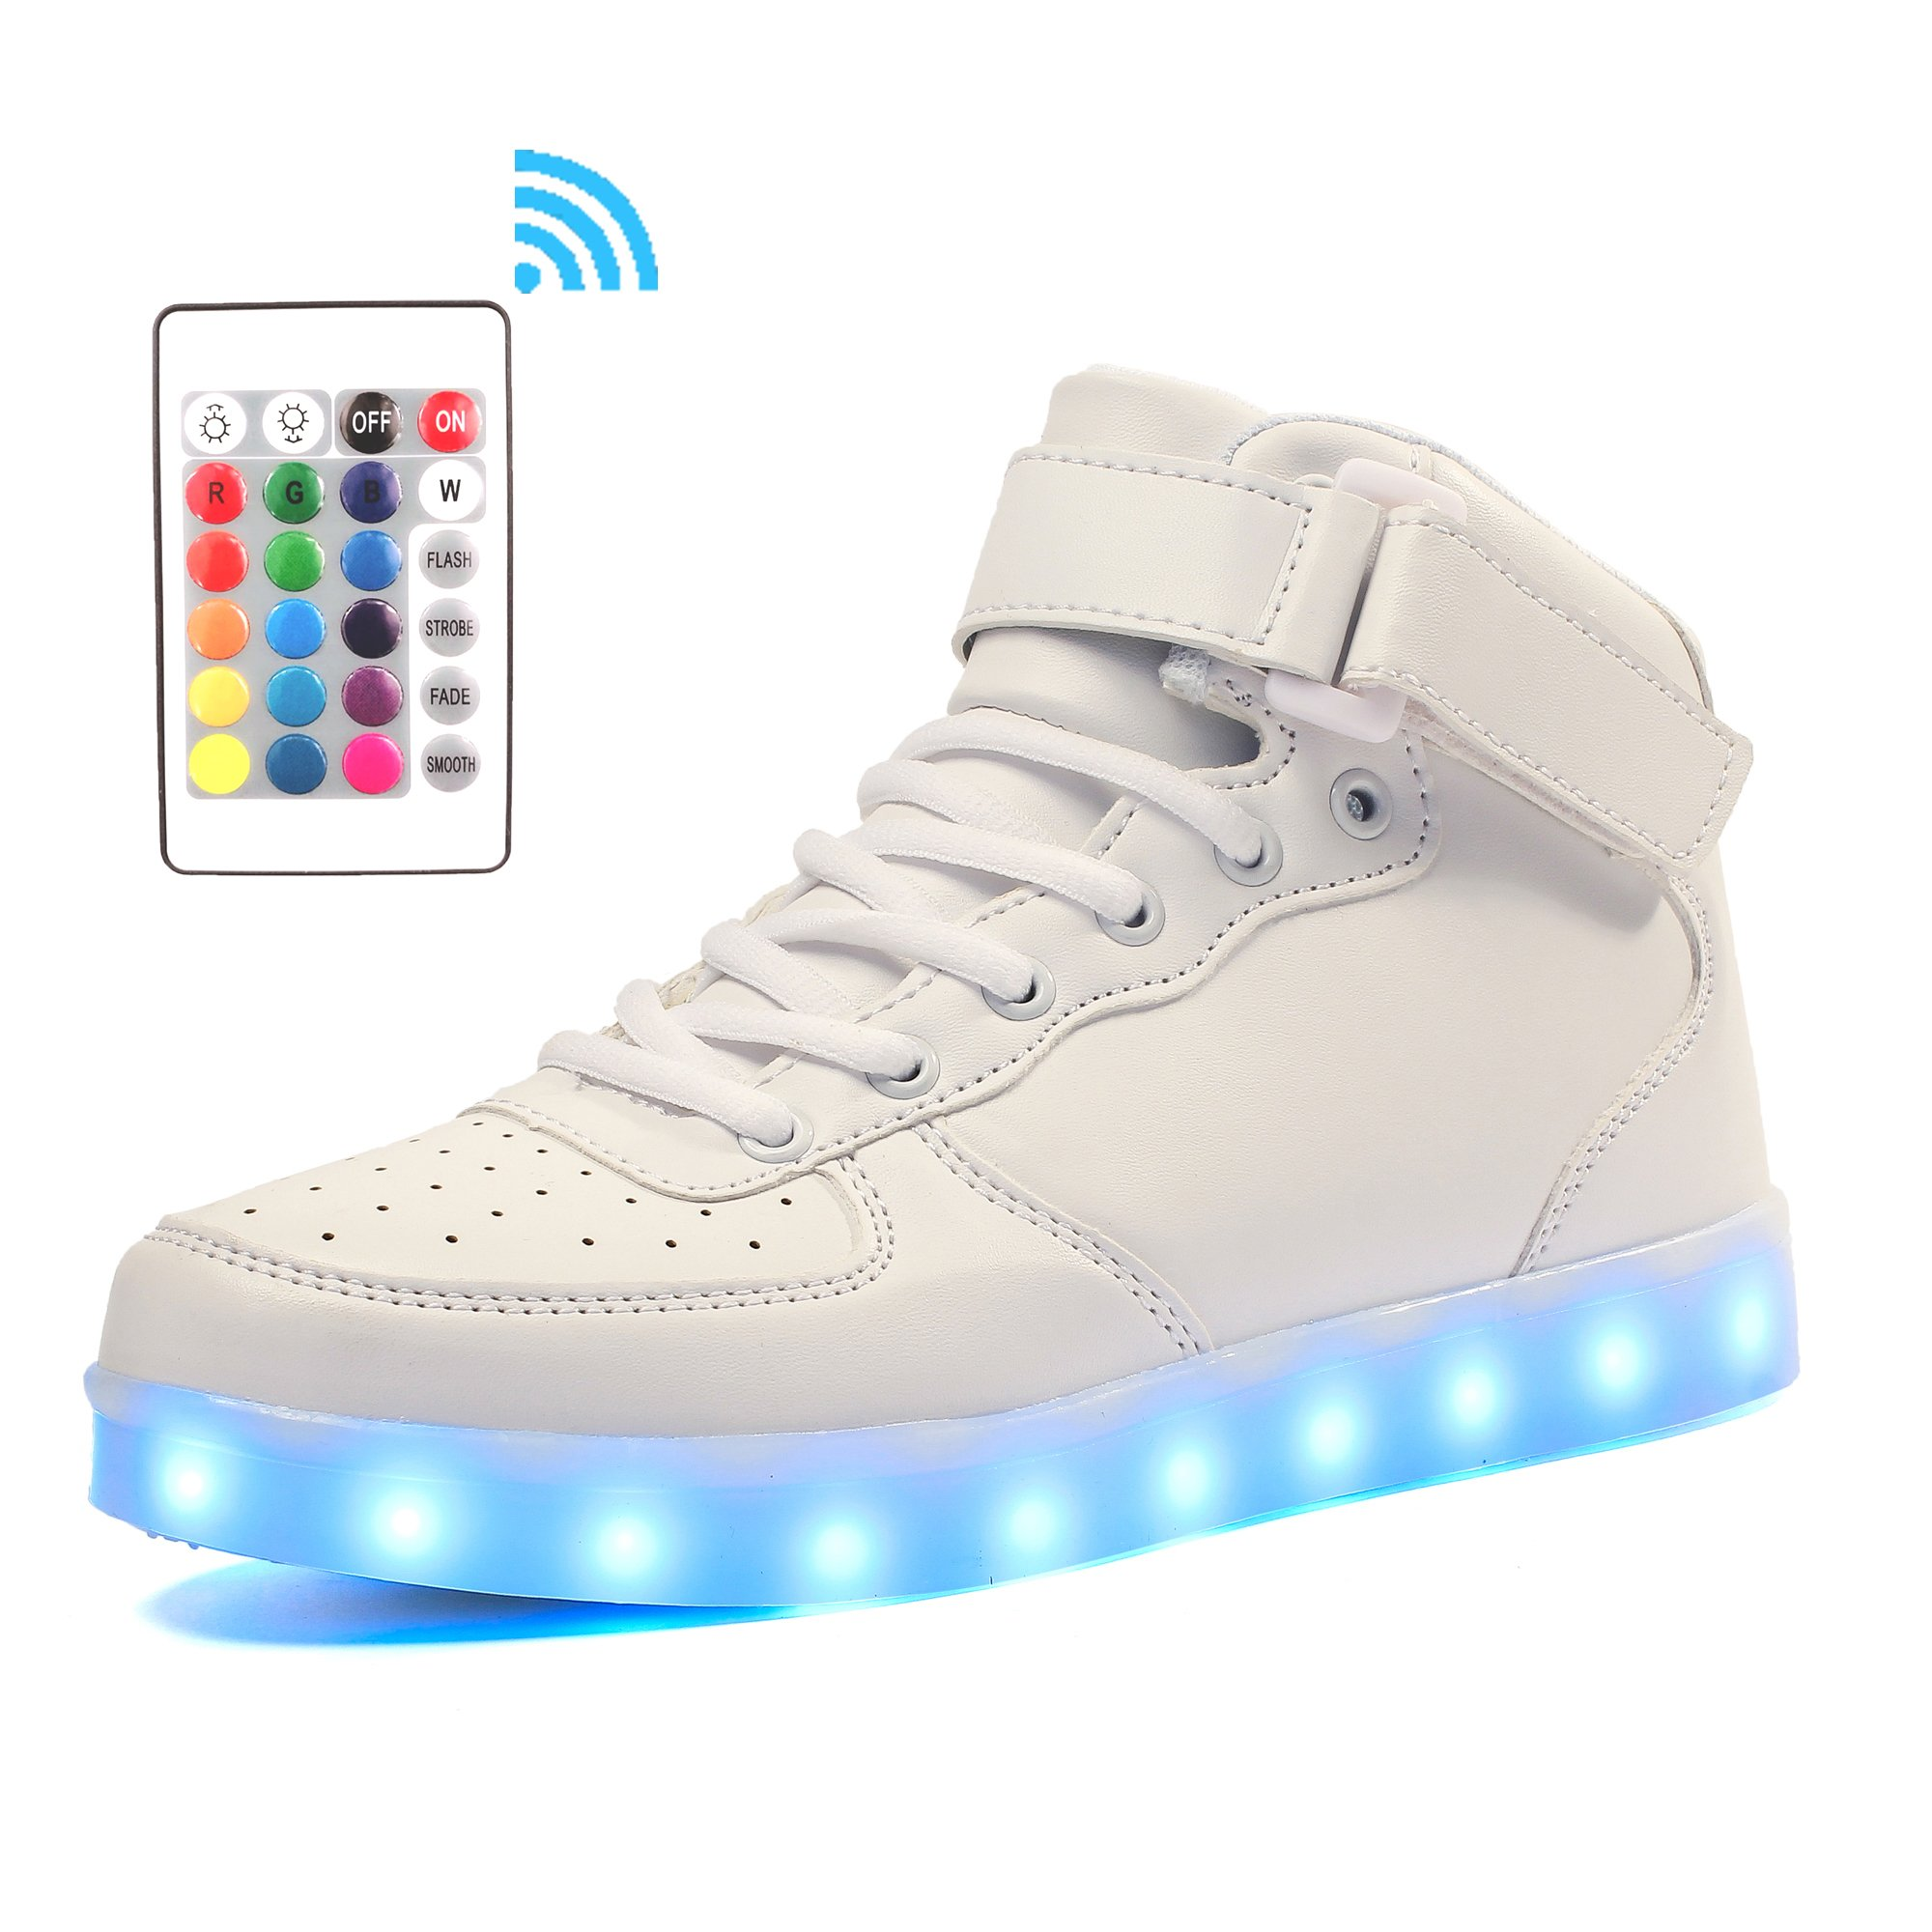 Voovix Kids LED Light up Shoes USB Rechargeable Flashing High-top Sneakers with Remote Control for Boys and Girls(White,US7/CN40)